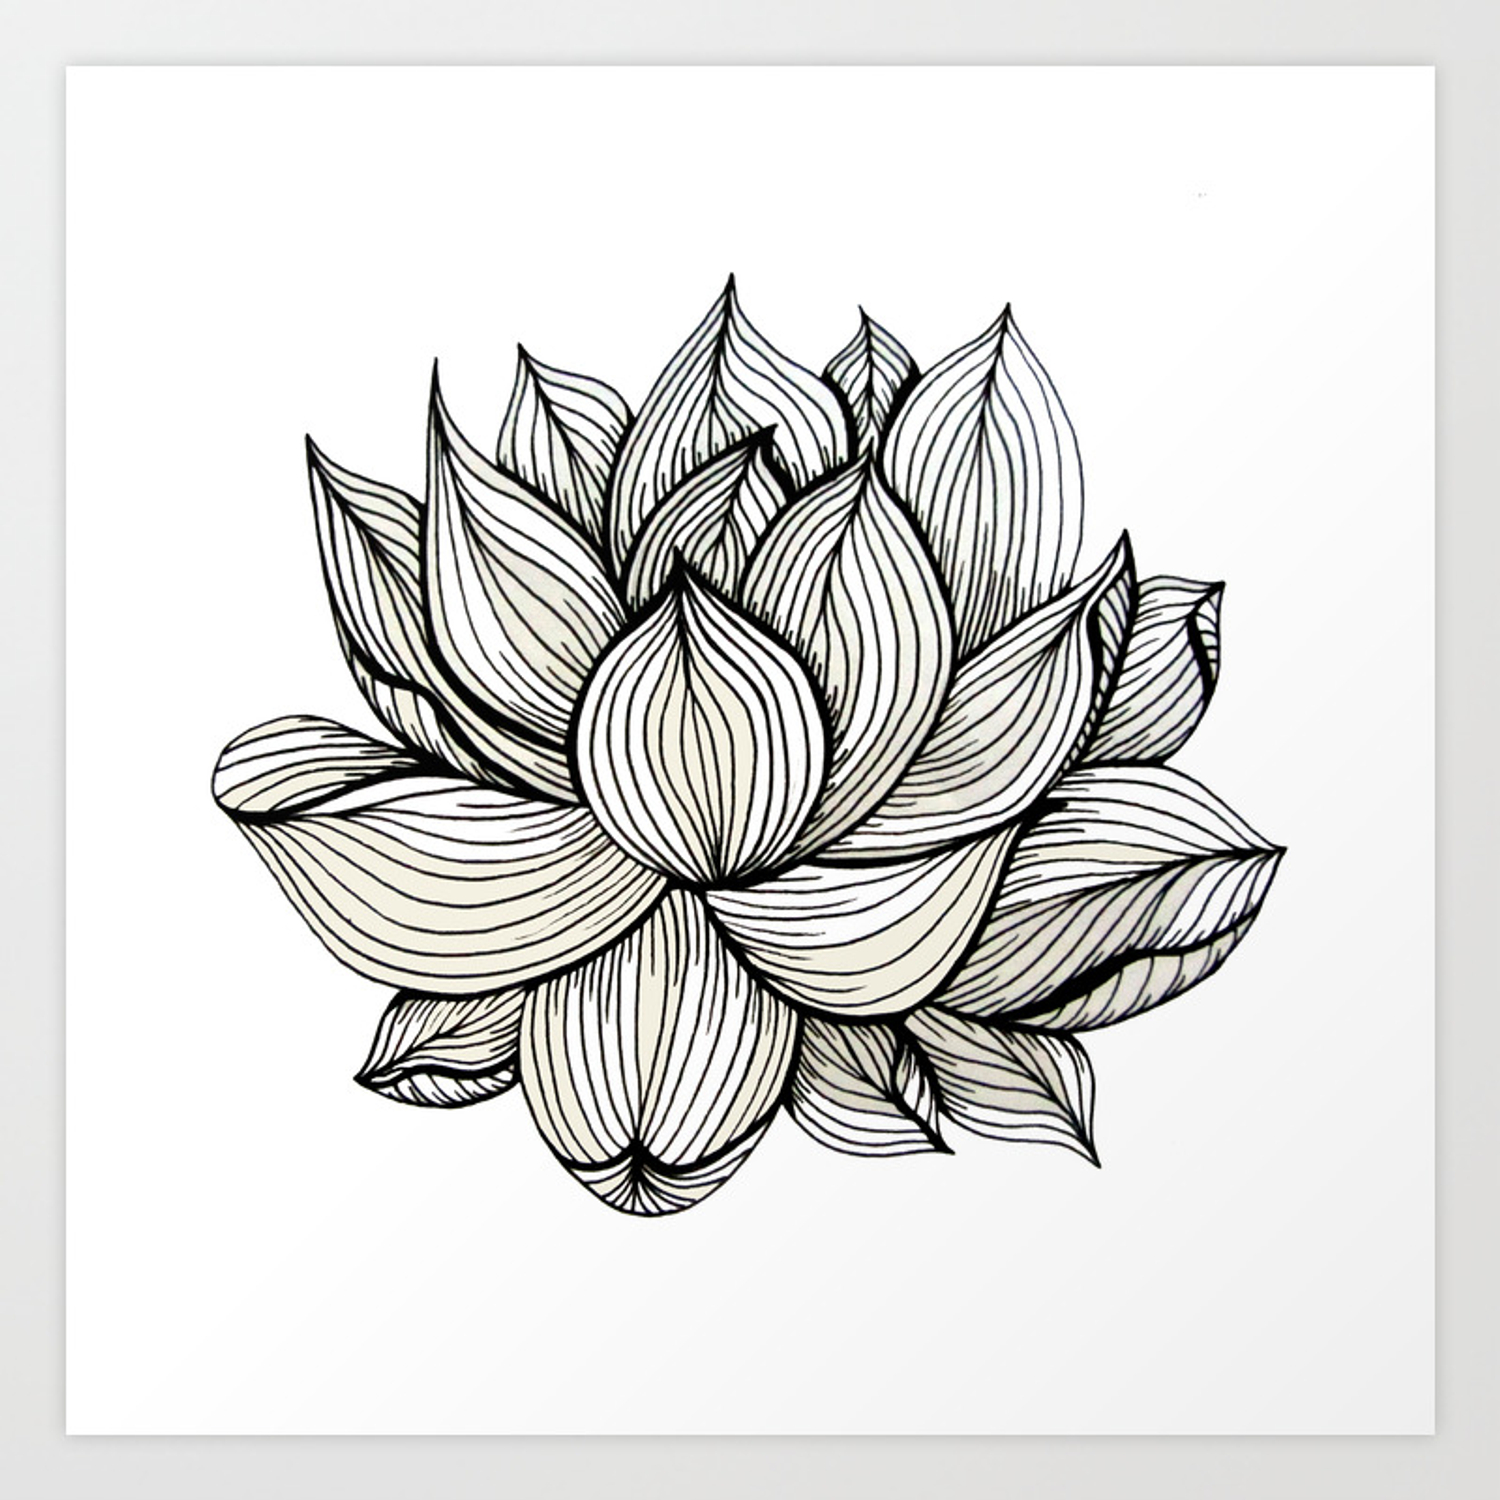 Lotus Flower Black And White Nature Organic Design Drawing Abstract Unique Lines Pattern Art Print